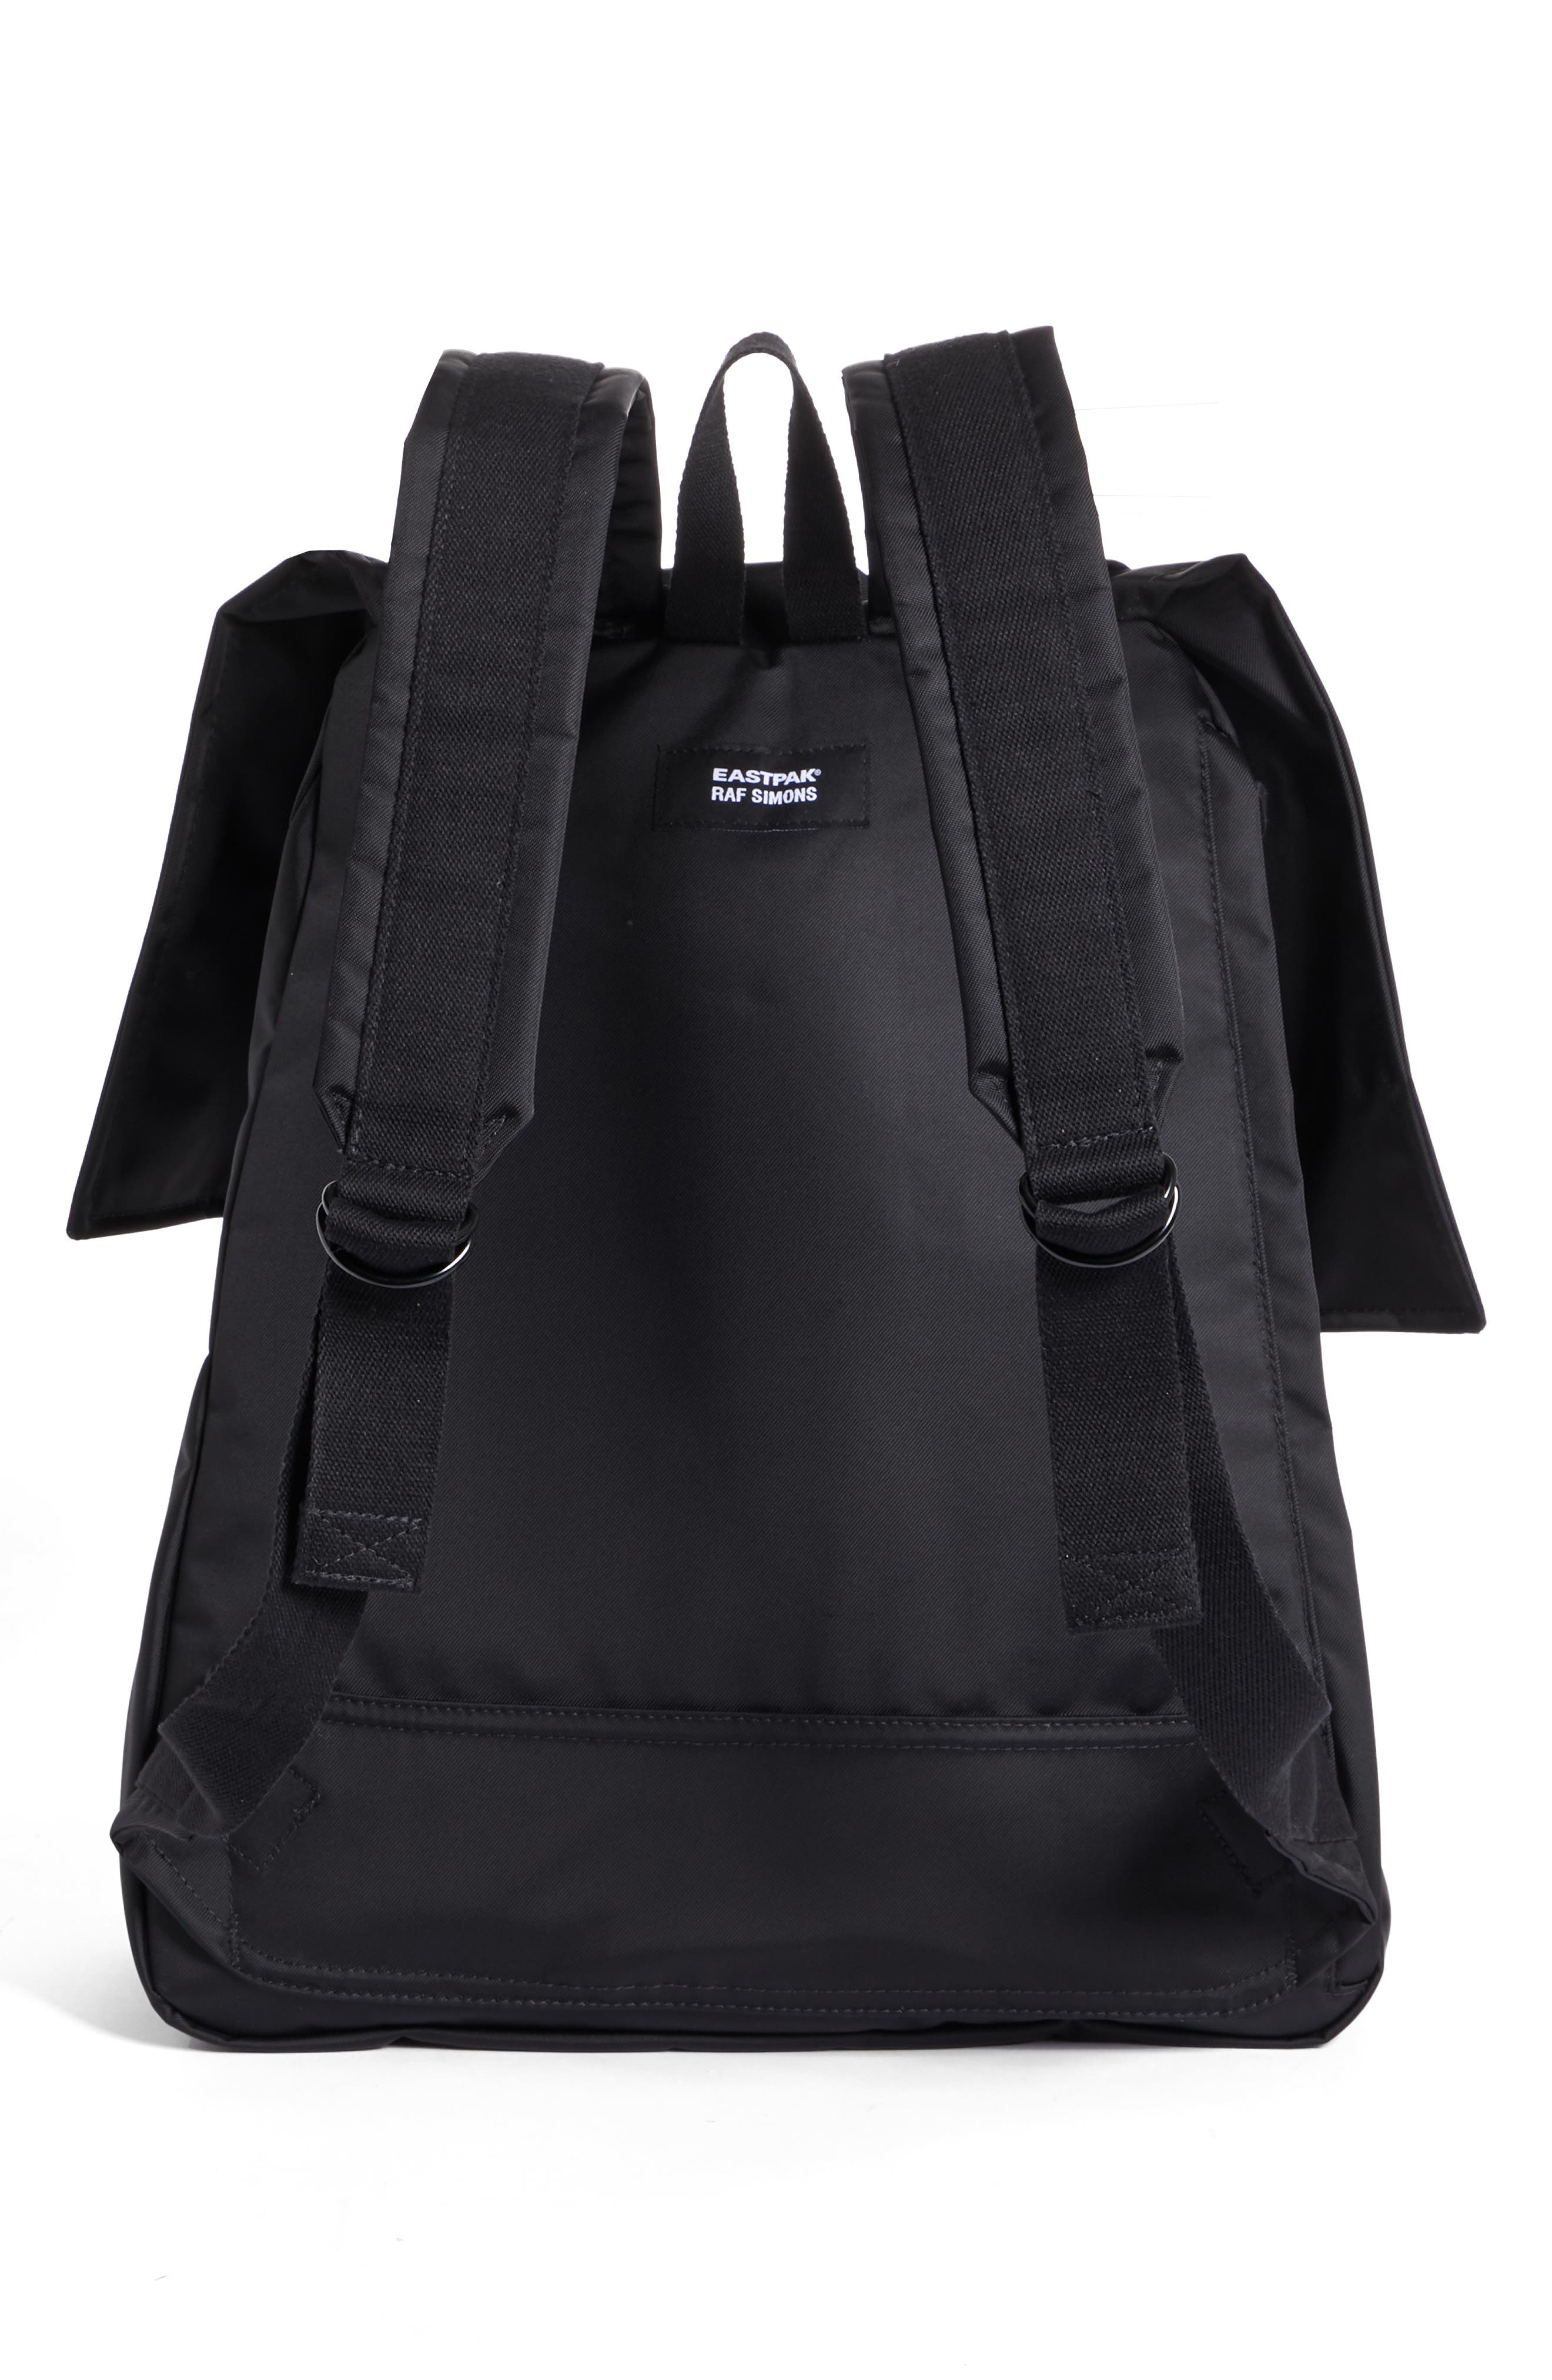 RAF SIMONS,                             Eastpak x Raf Simons Backpack,                             Alternate thumbnail 3, color,                             BLACK